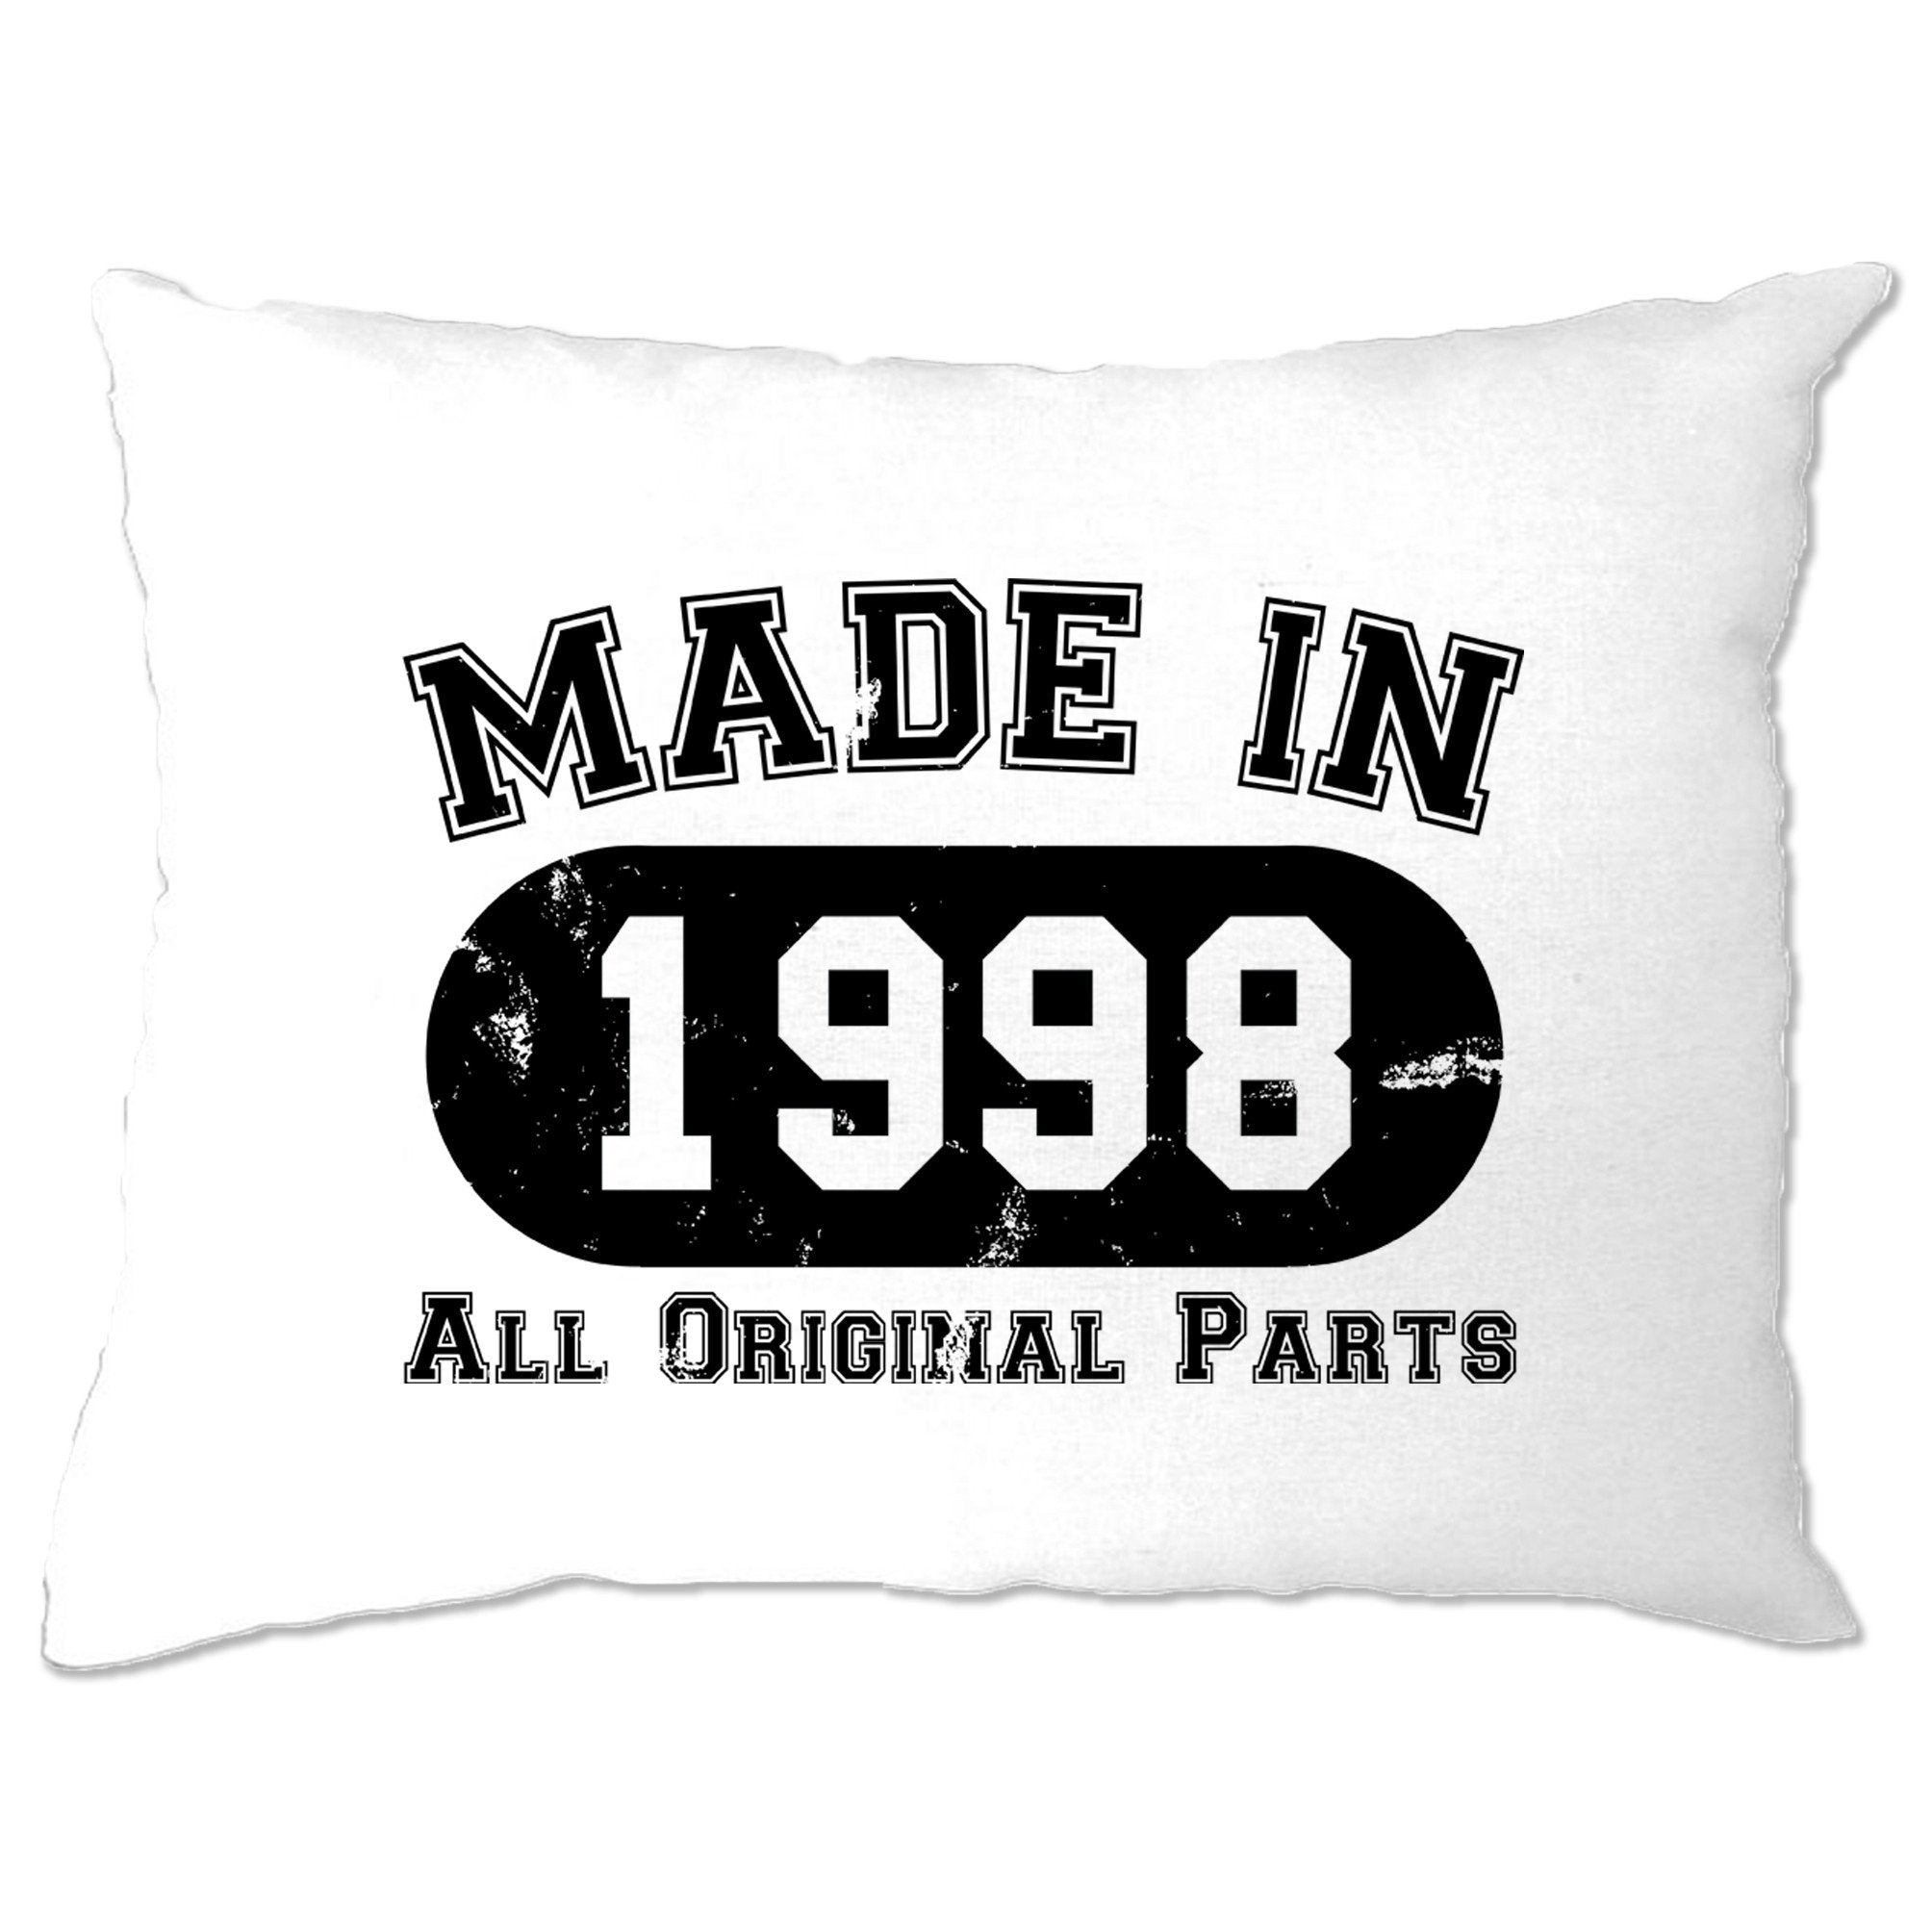 Made in 1998 All Original Parts Pillow Case [Distressed]